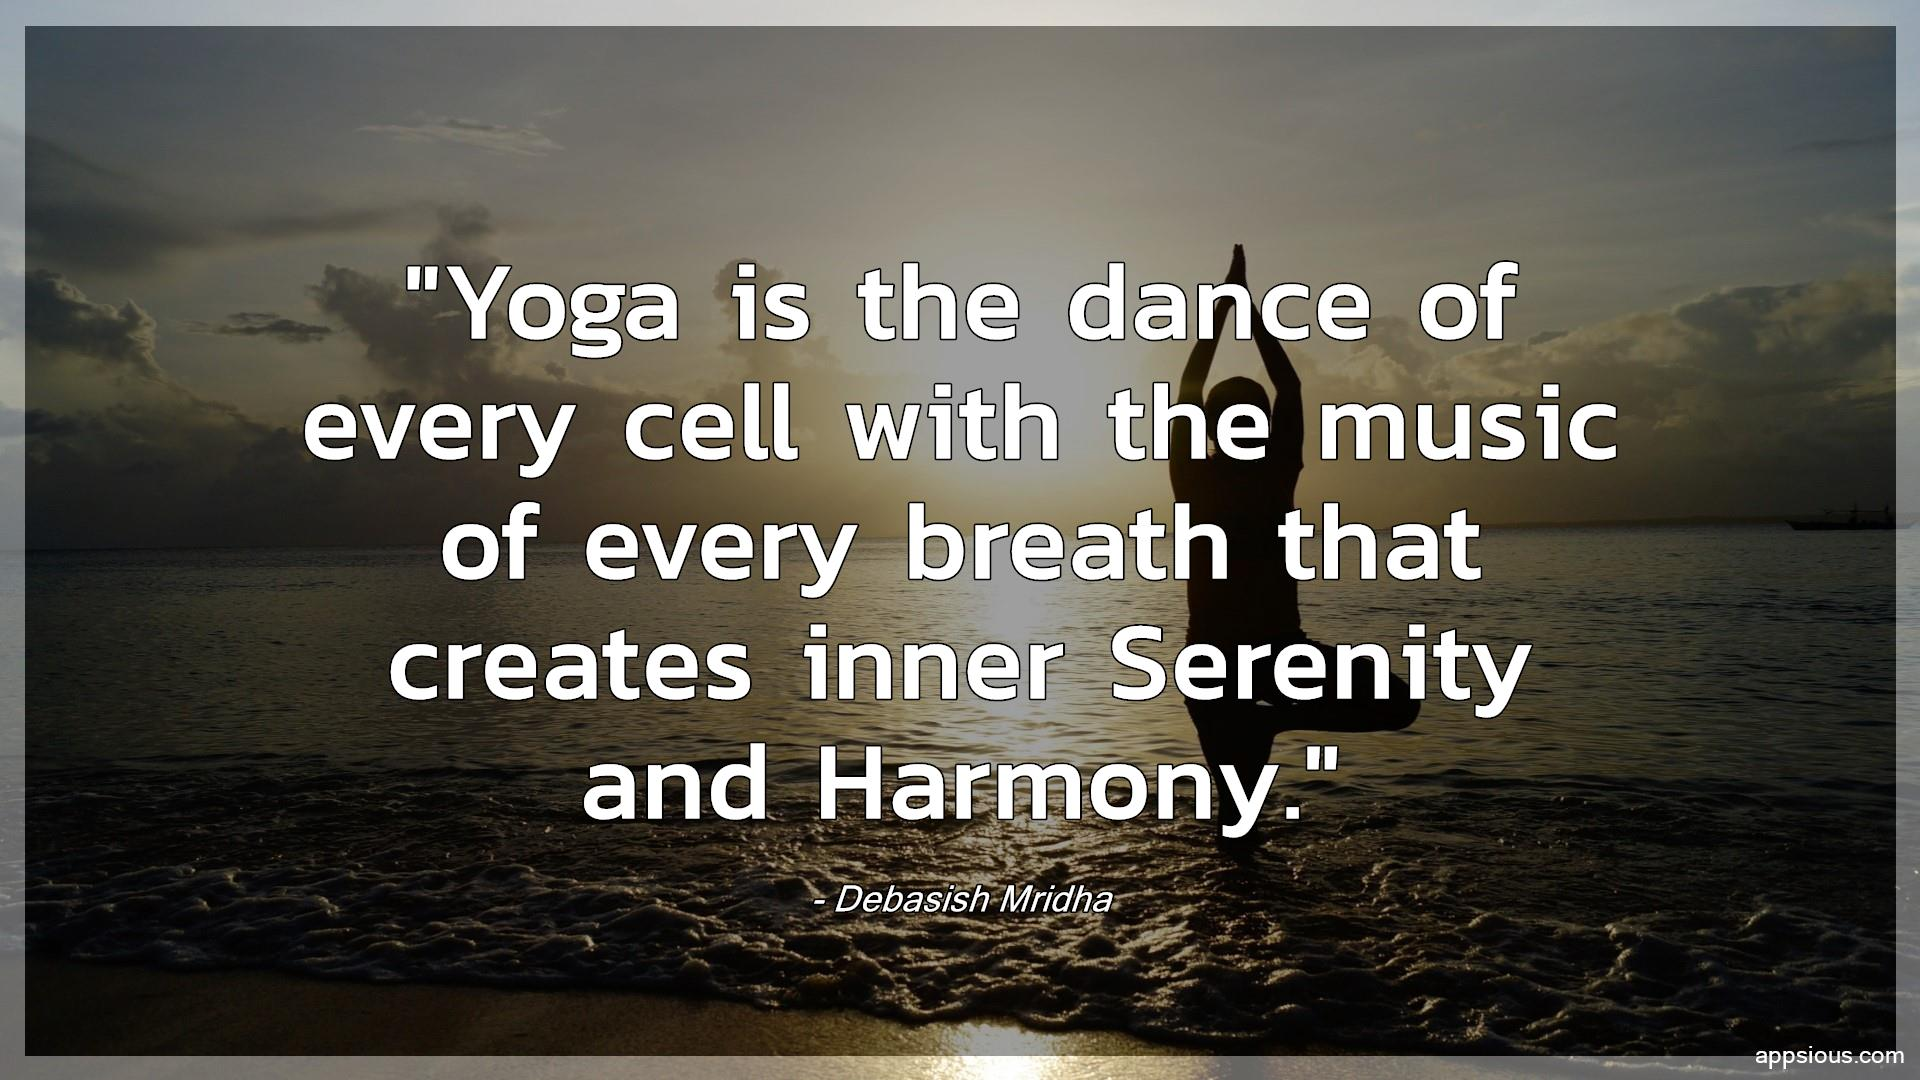 Yoga is the dance of every cell with the music of every breath that creates inner Serenity and Harmony.